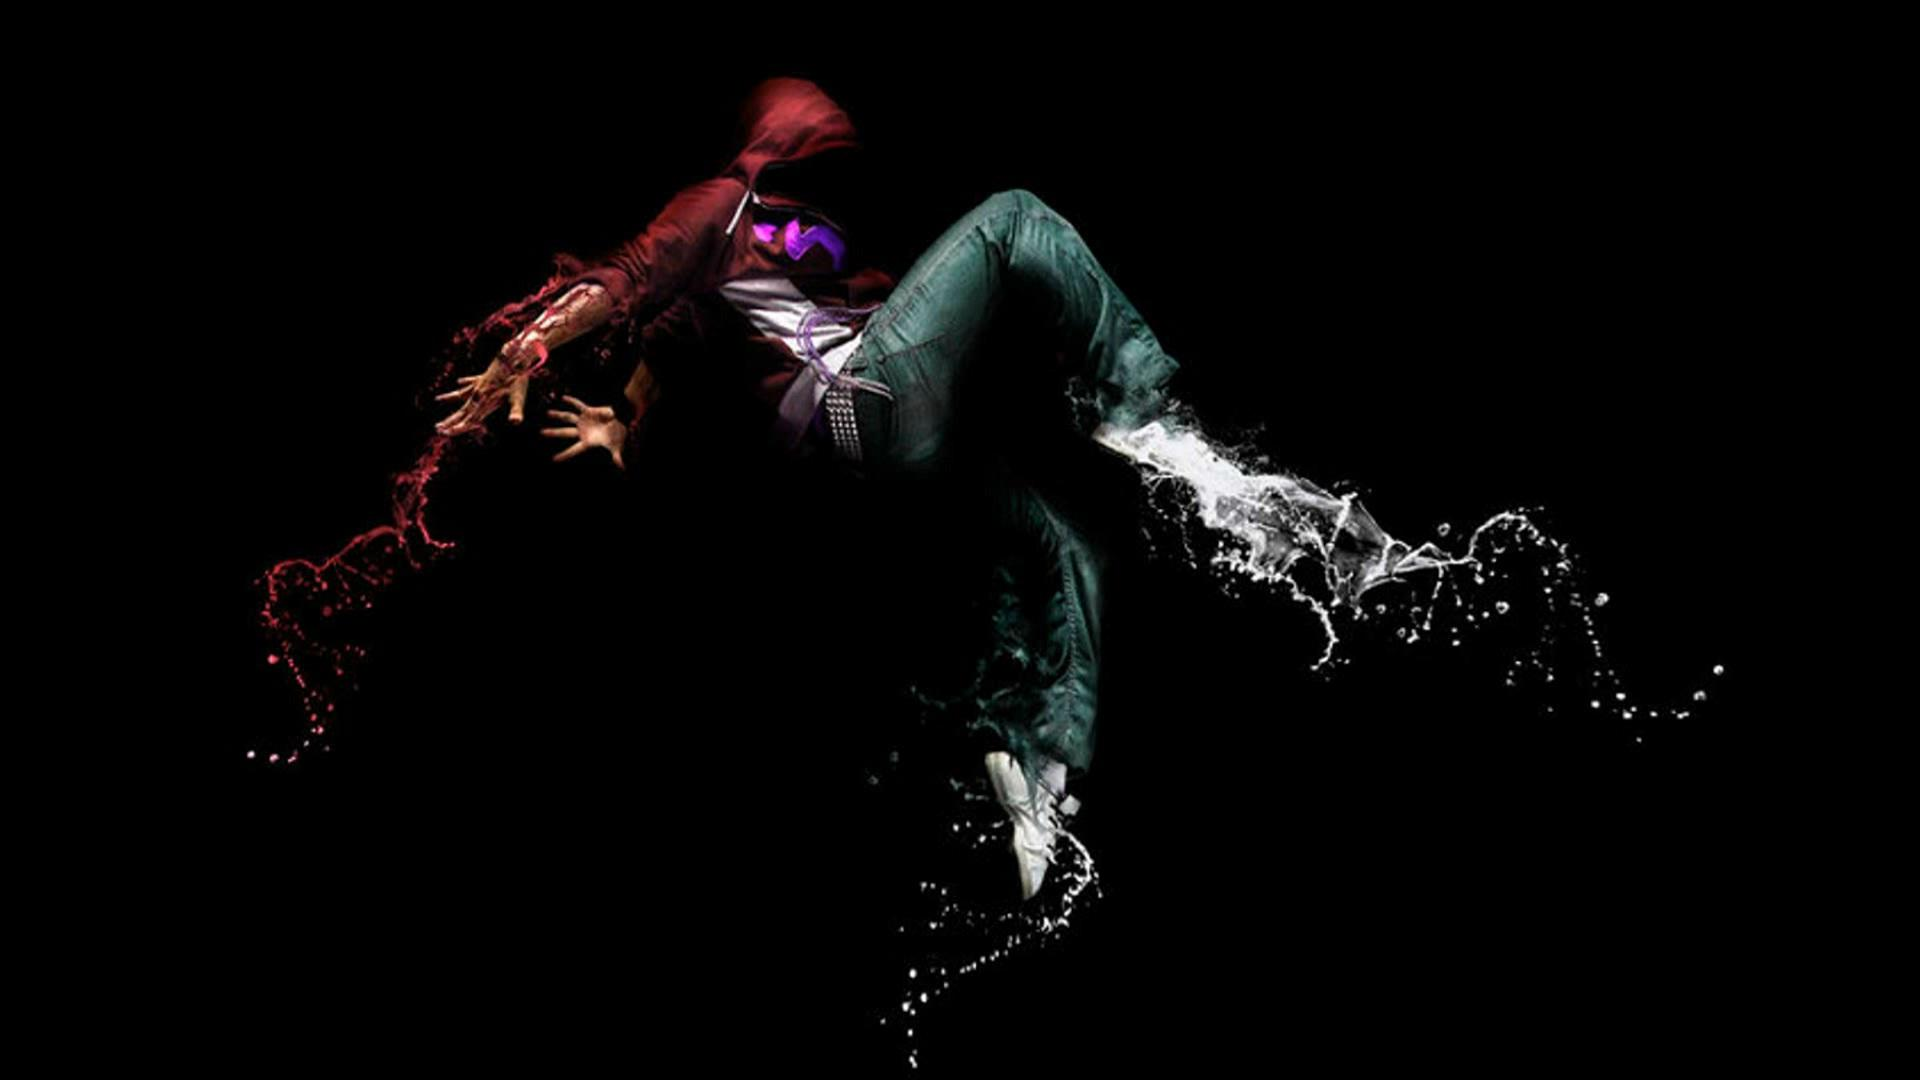 Abstract full hd wallpaper and background image - Cool boy wallpaper hd download ...